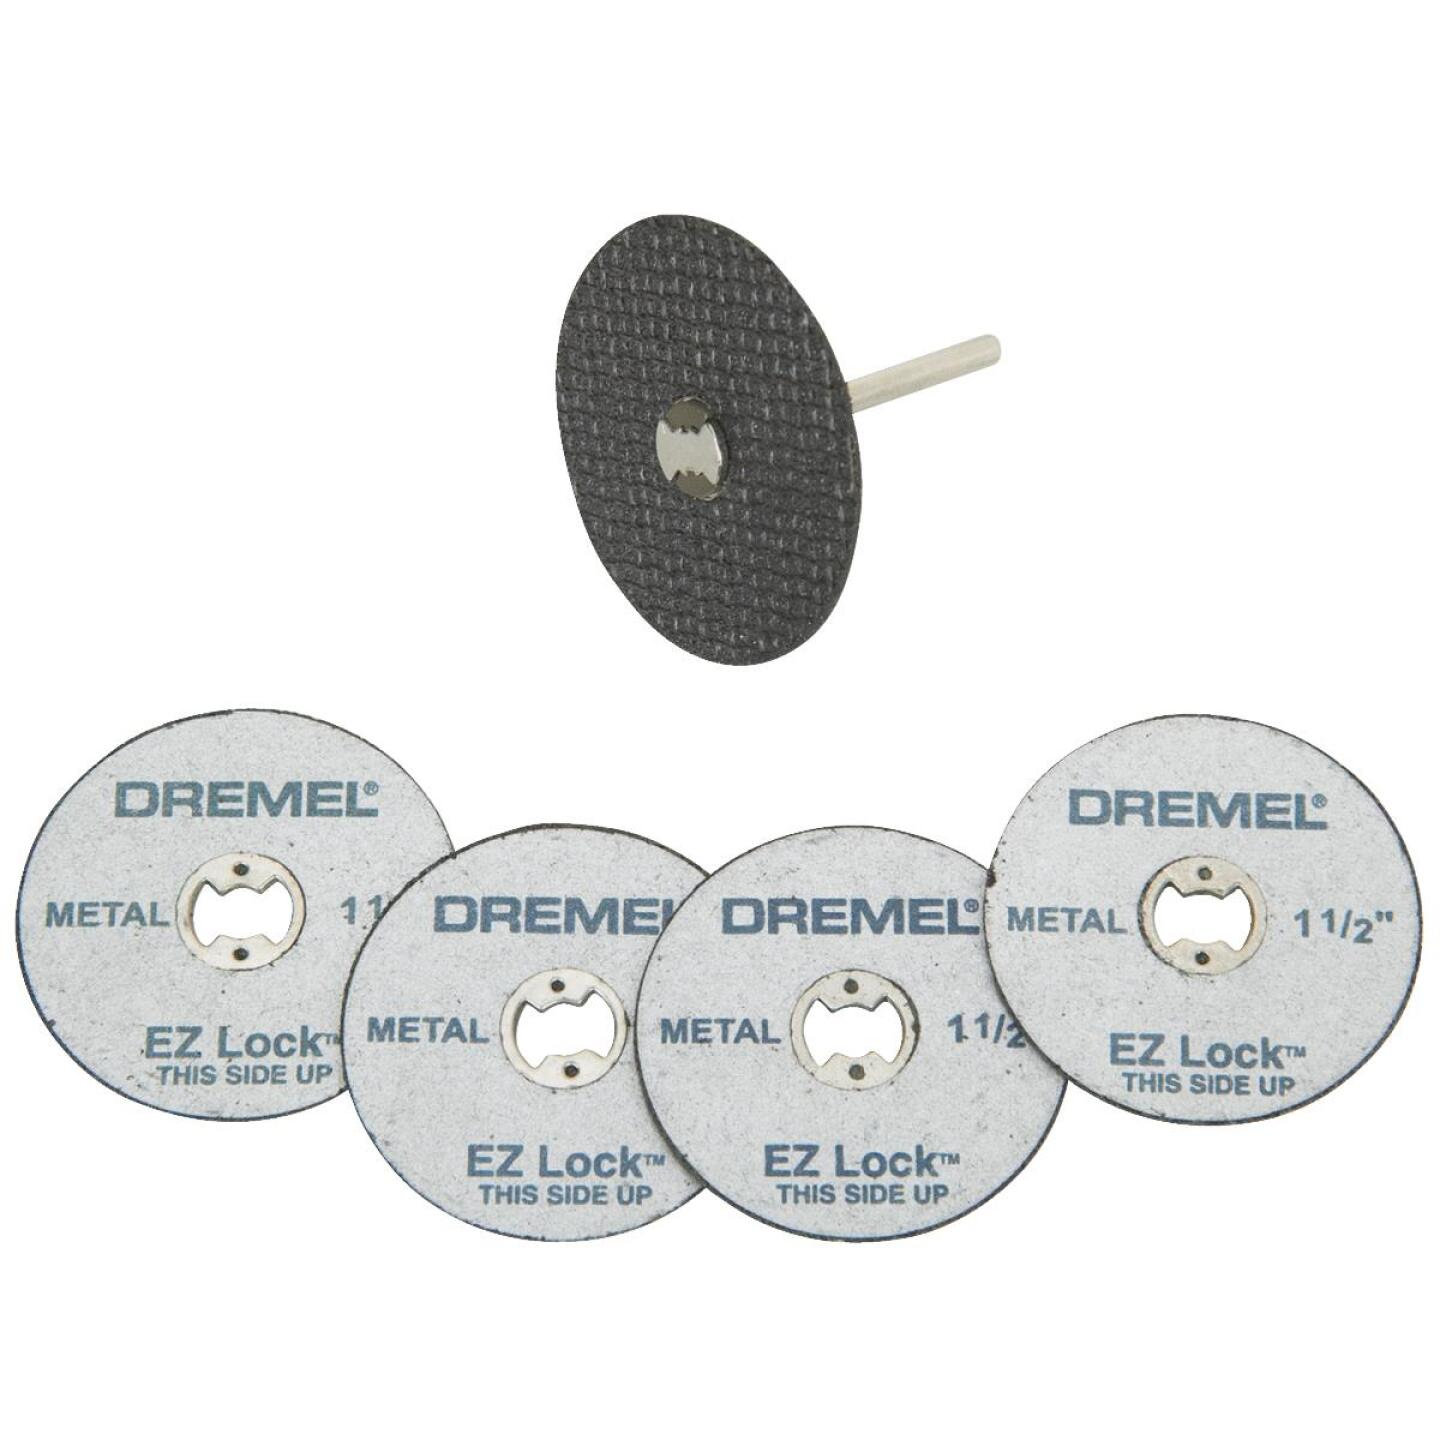 Dremel EZ Lock Mandrel and Cut-Off Wheel Starter Rotary Tool Accessory Kit (5-Piece) Image 1